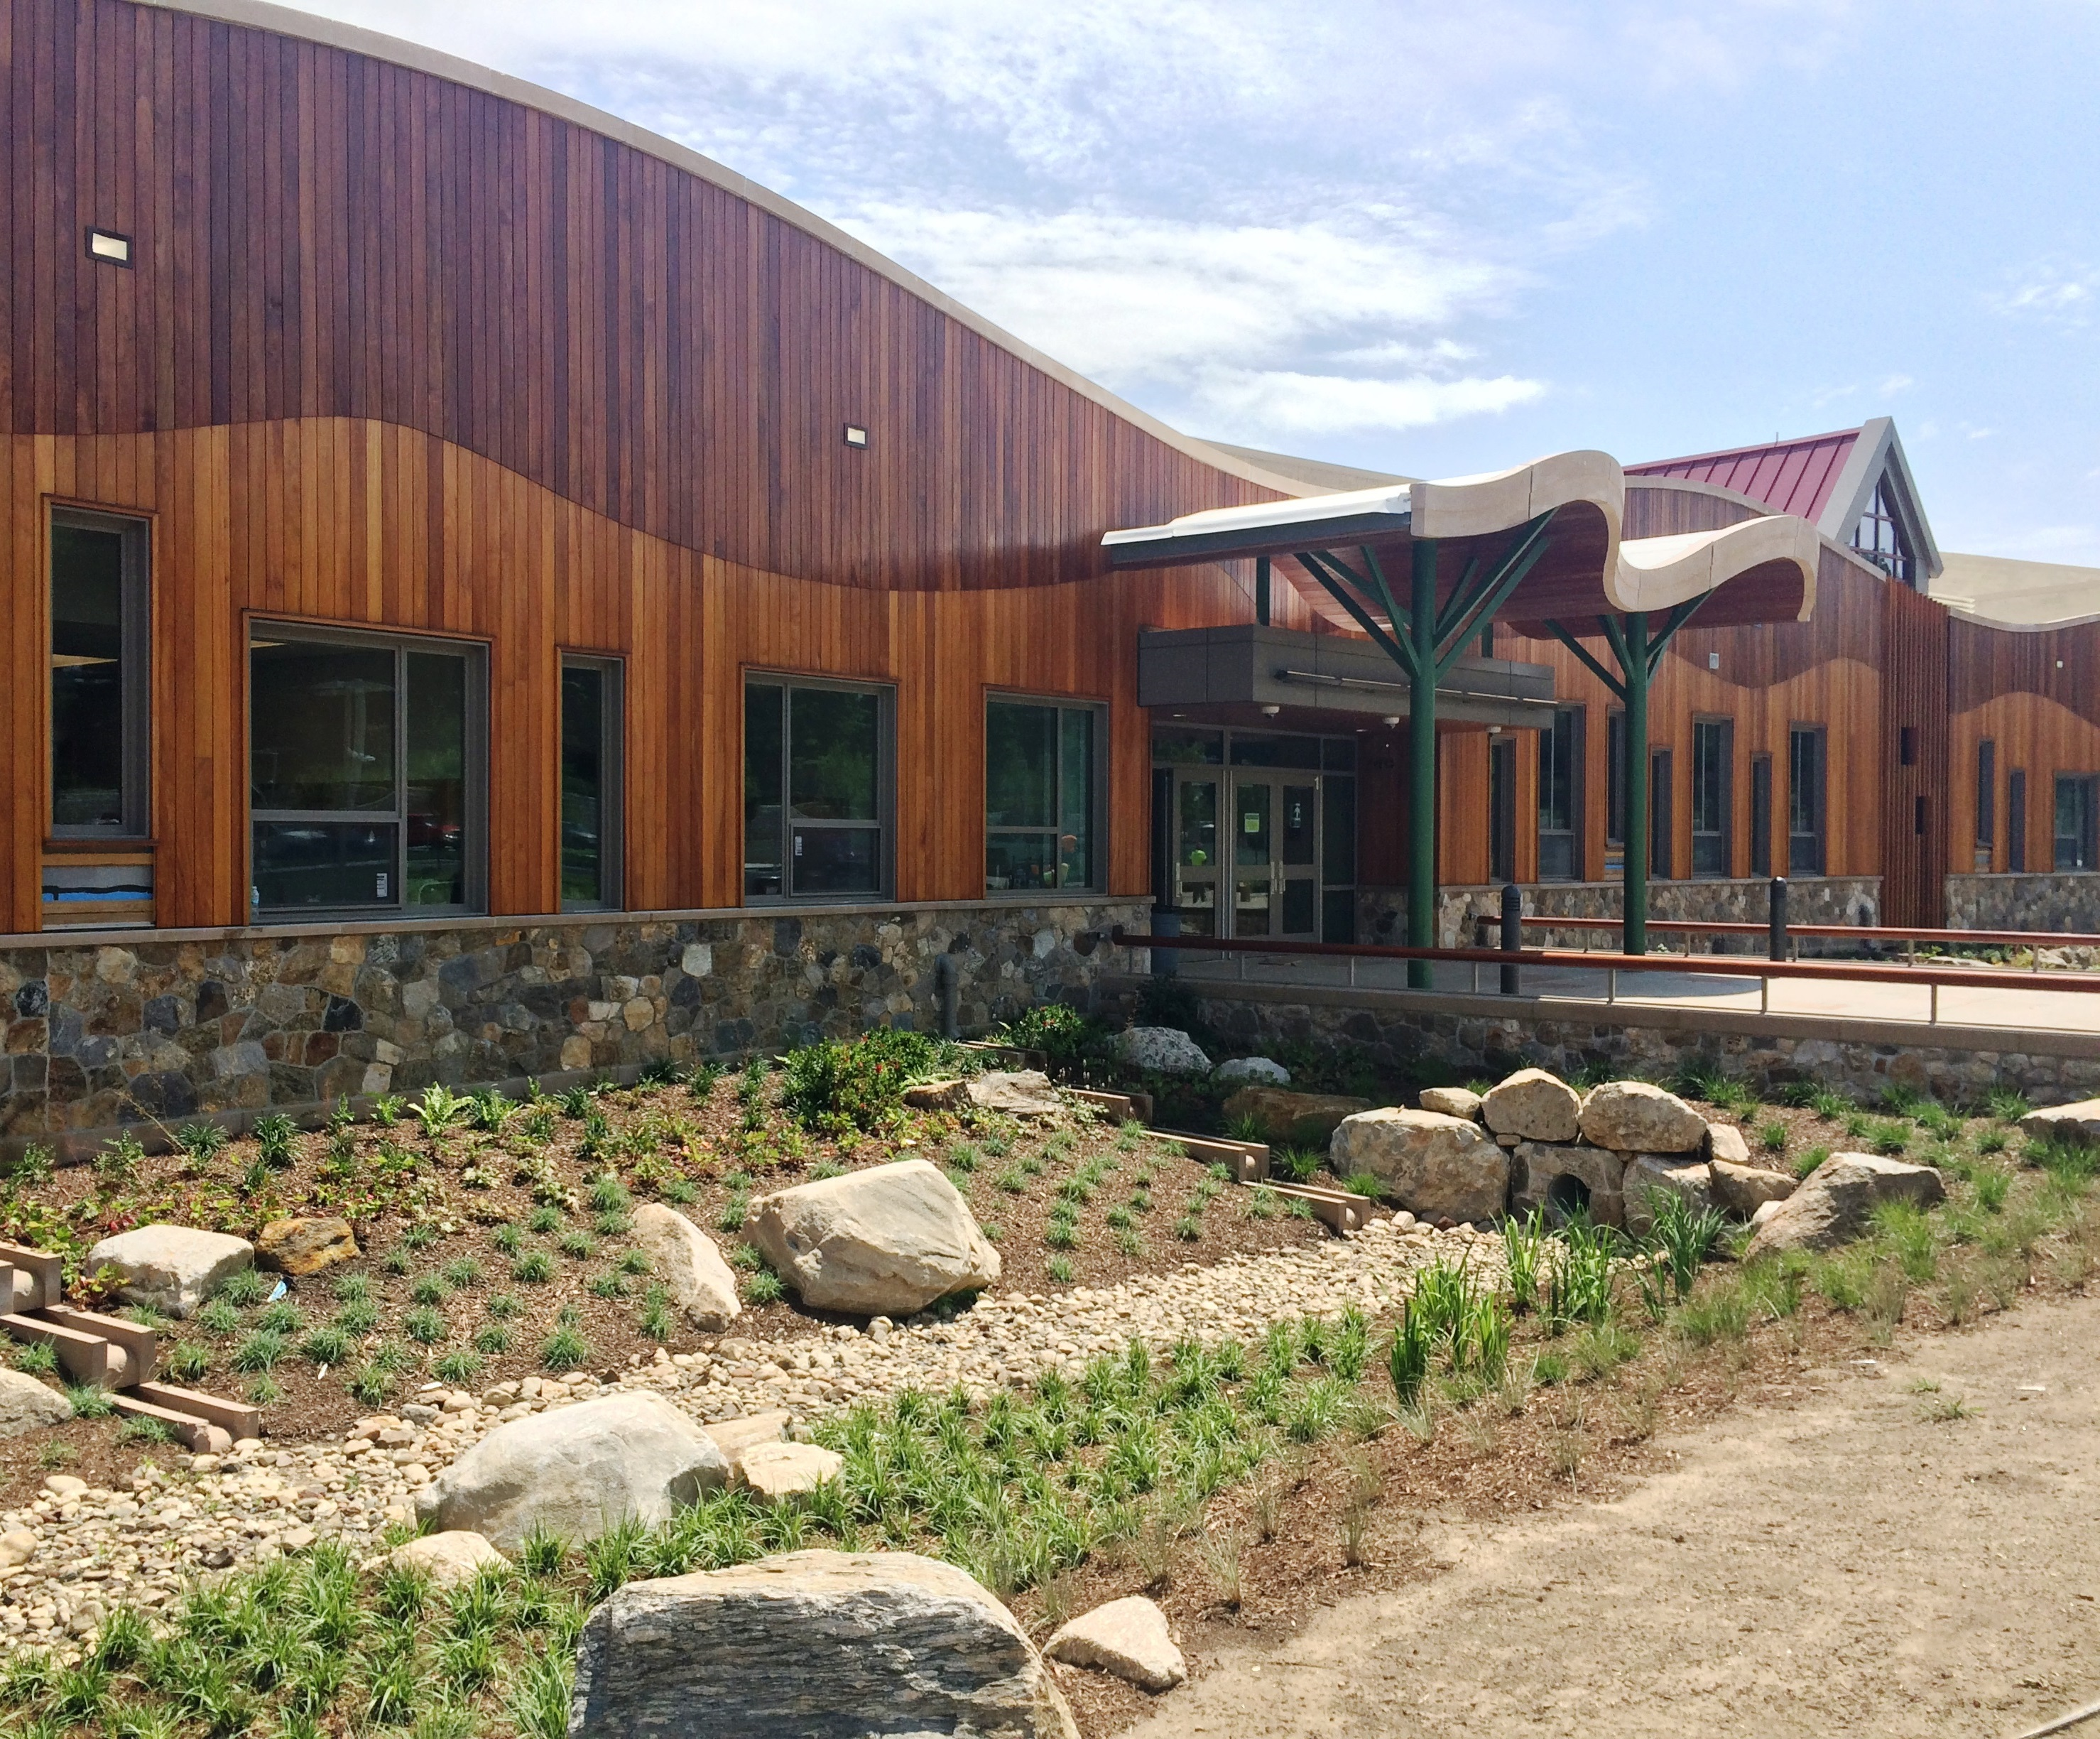 The front entrance of a wood-clad modern school, with an entryway that spans a landscaped rock garden.